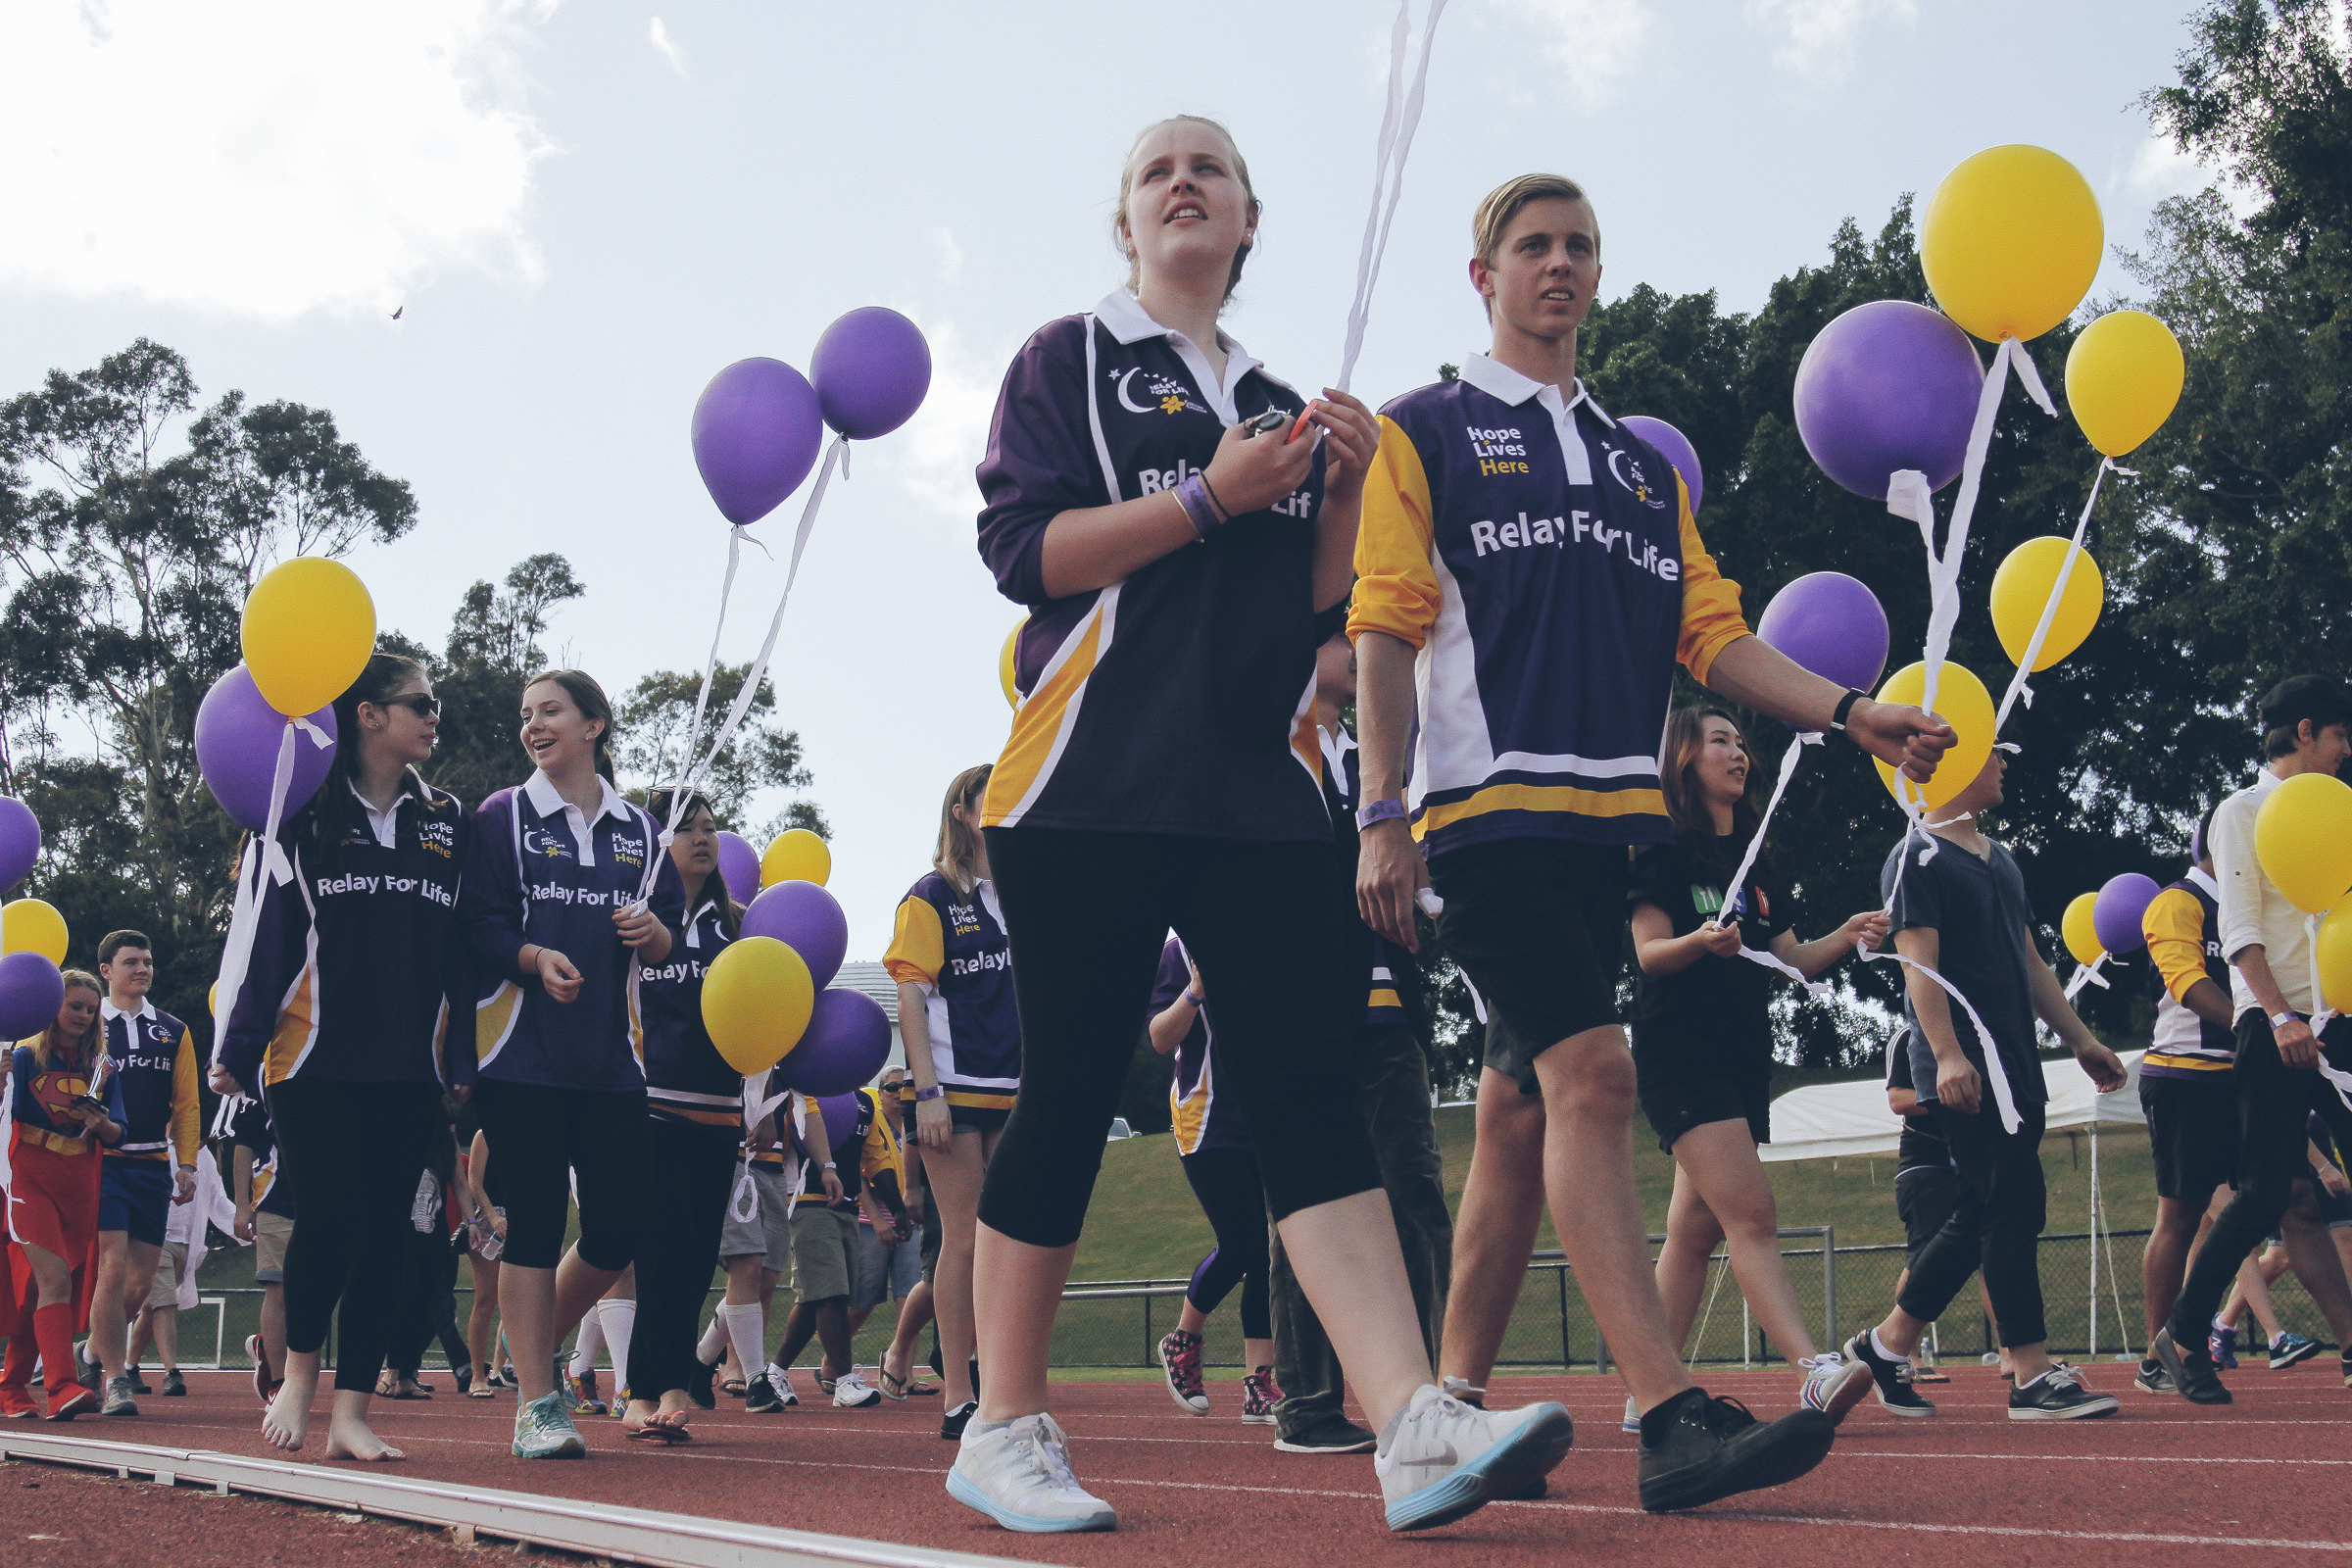 More than 200 participants raised over $28,000 for cancer research at Griffith's Relay for Life event.